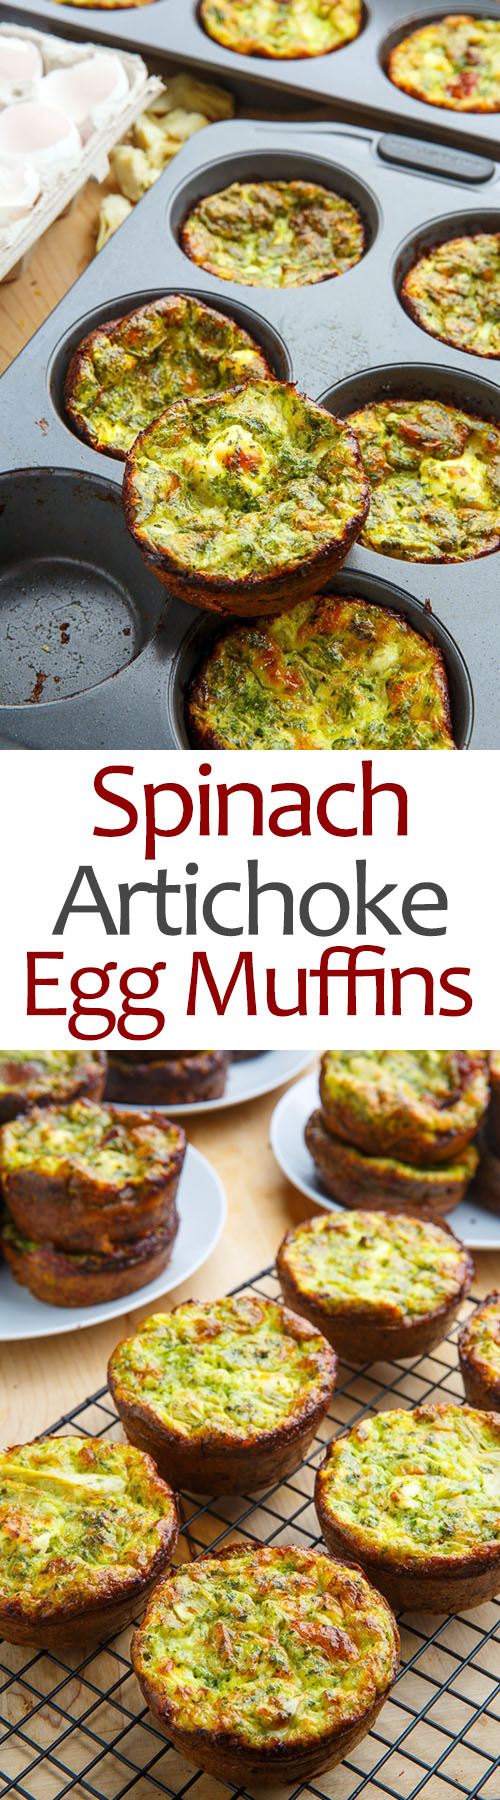 Spinach and Artichoke Egg Muffins